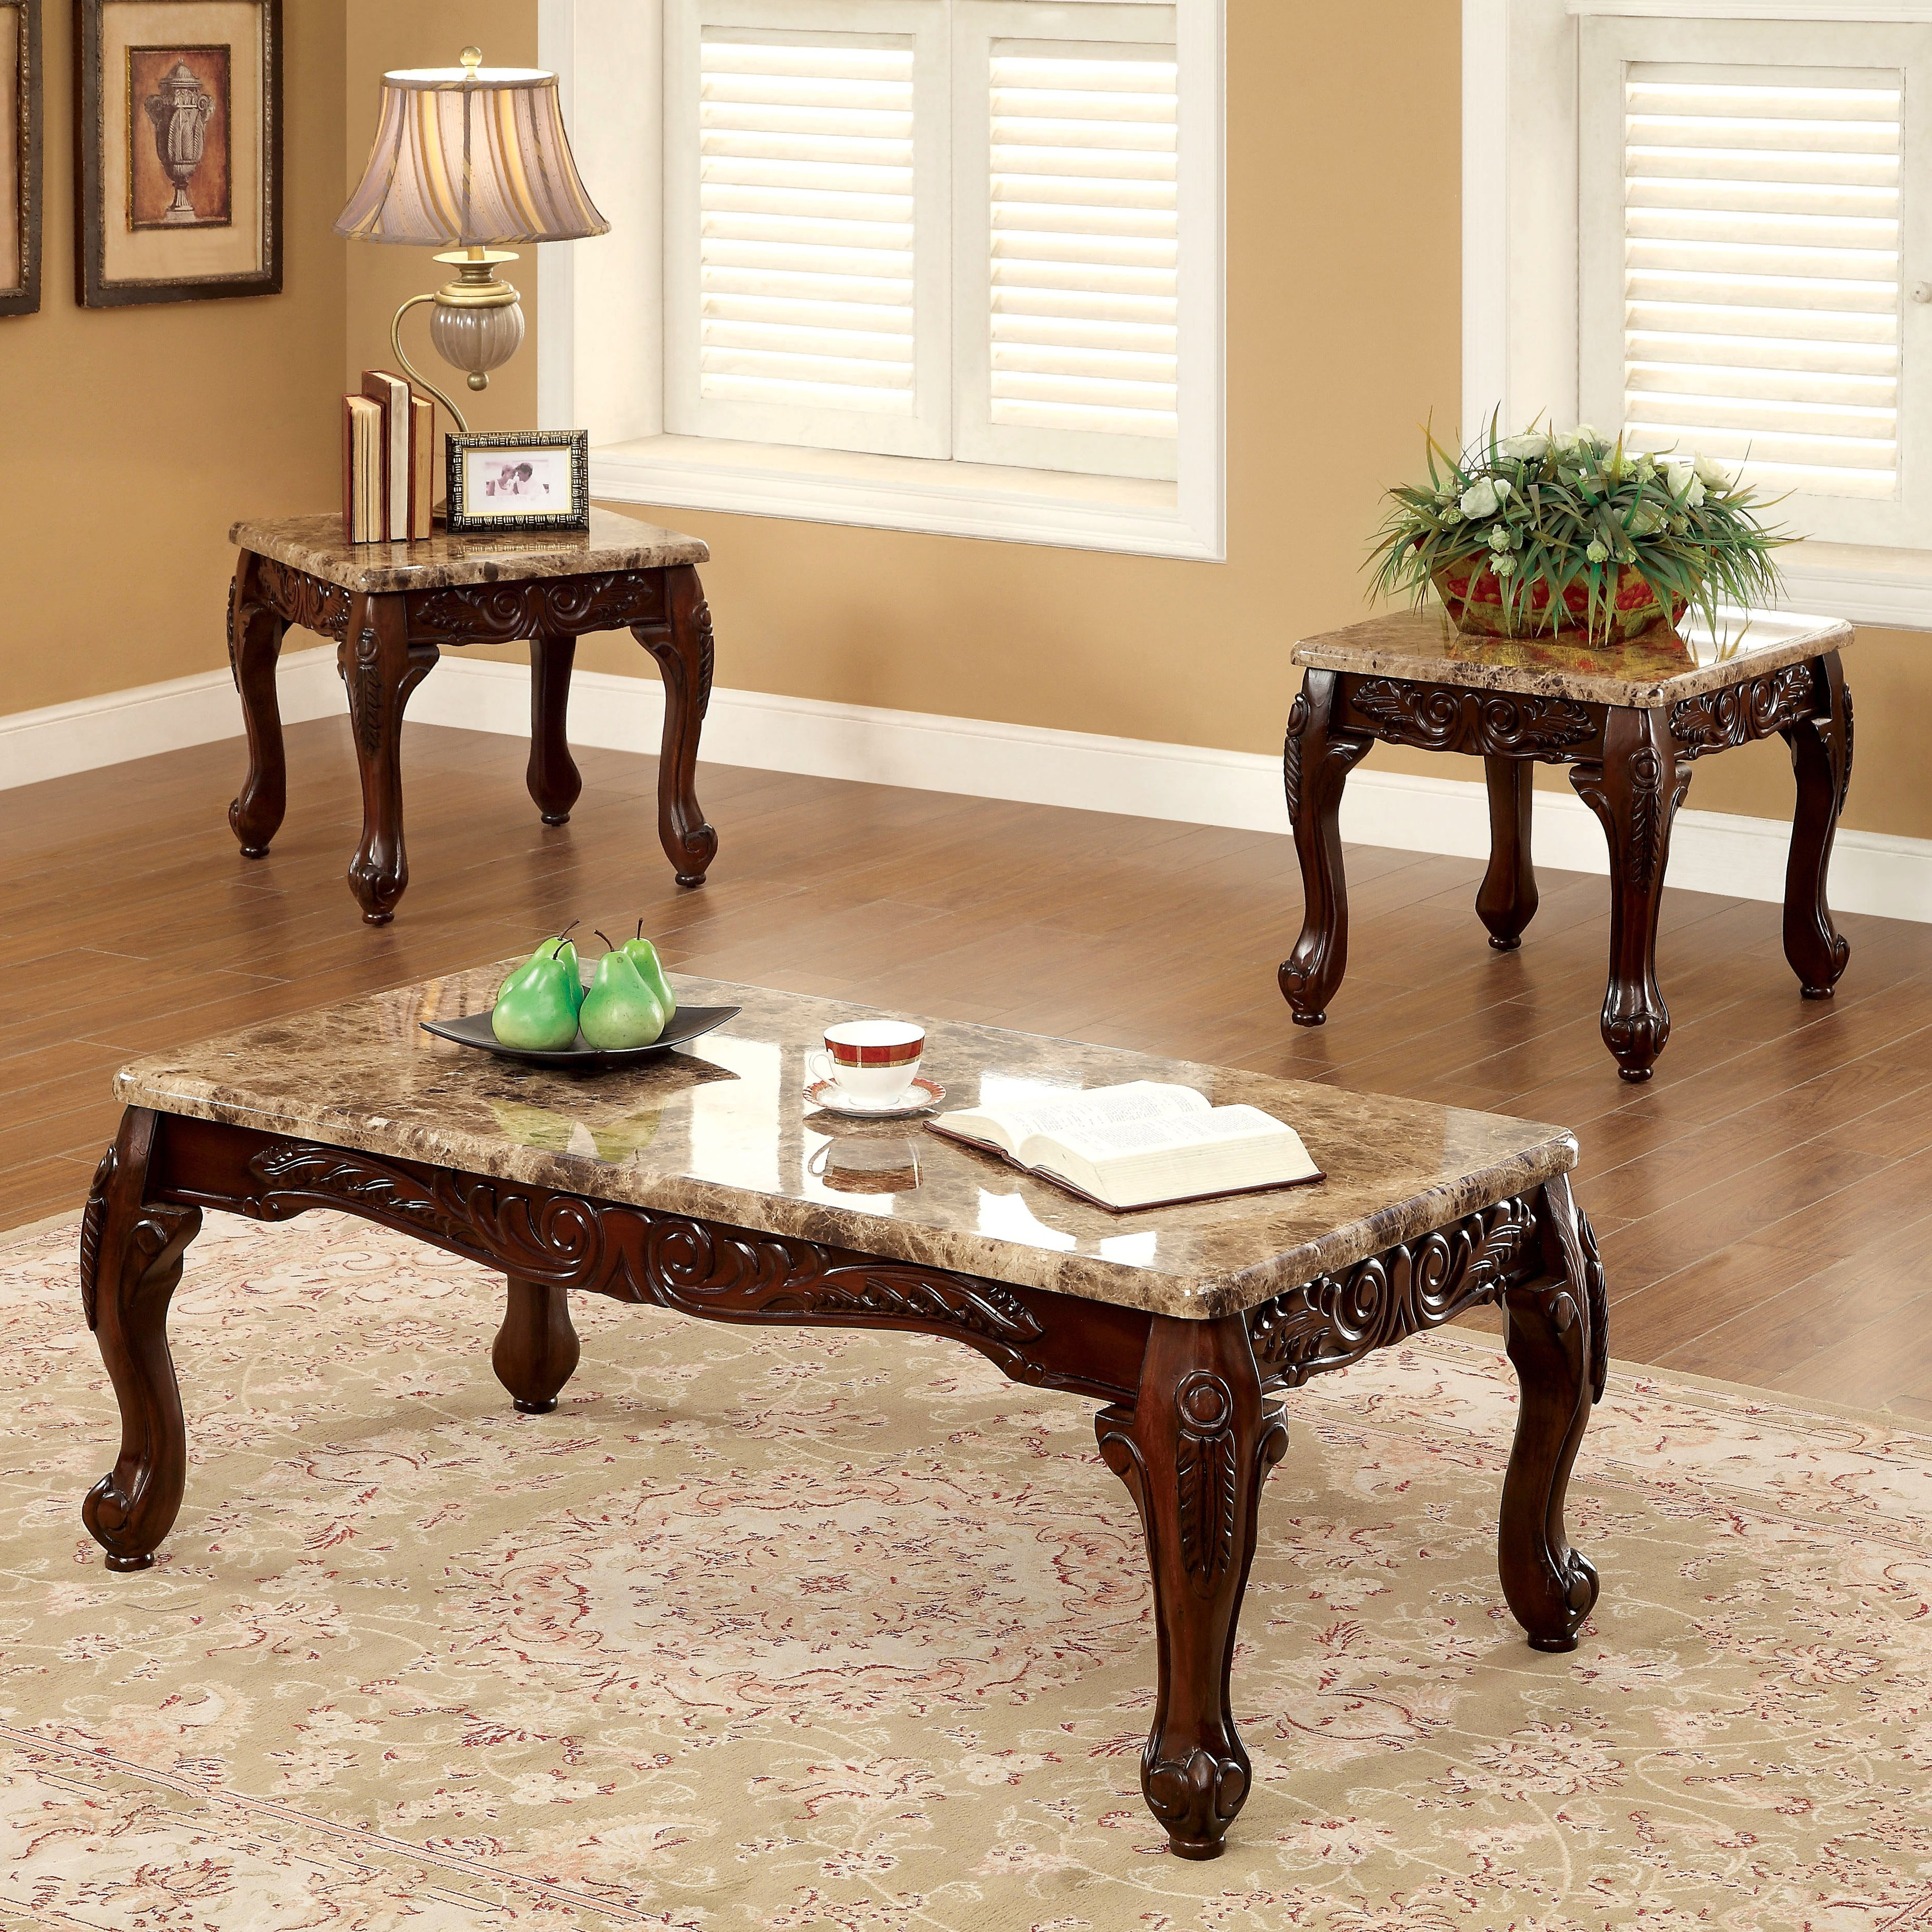 gracewood hollow mckinley traditional piece accent table set free shipping today pine trestle dining oriental vase lamp living room sets kitchen bench ikea futon covers bath and